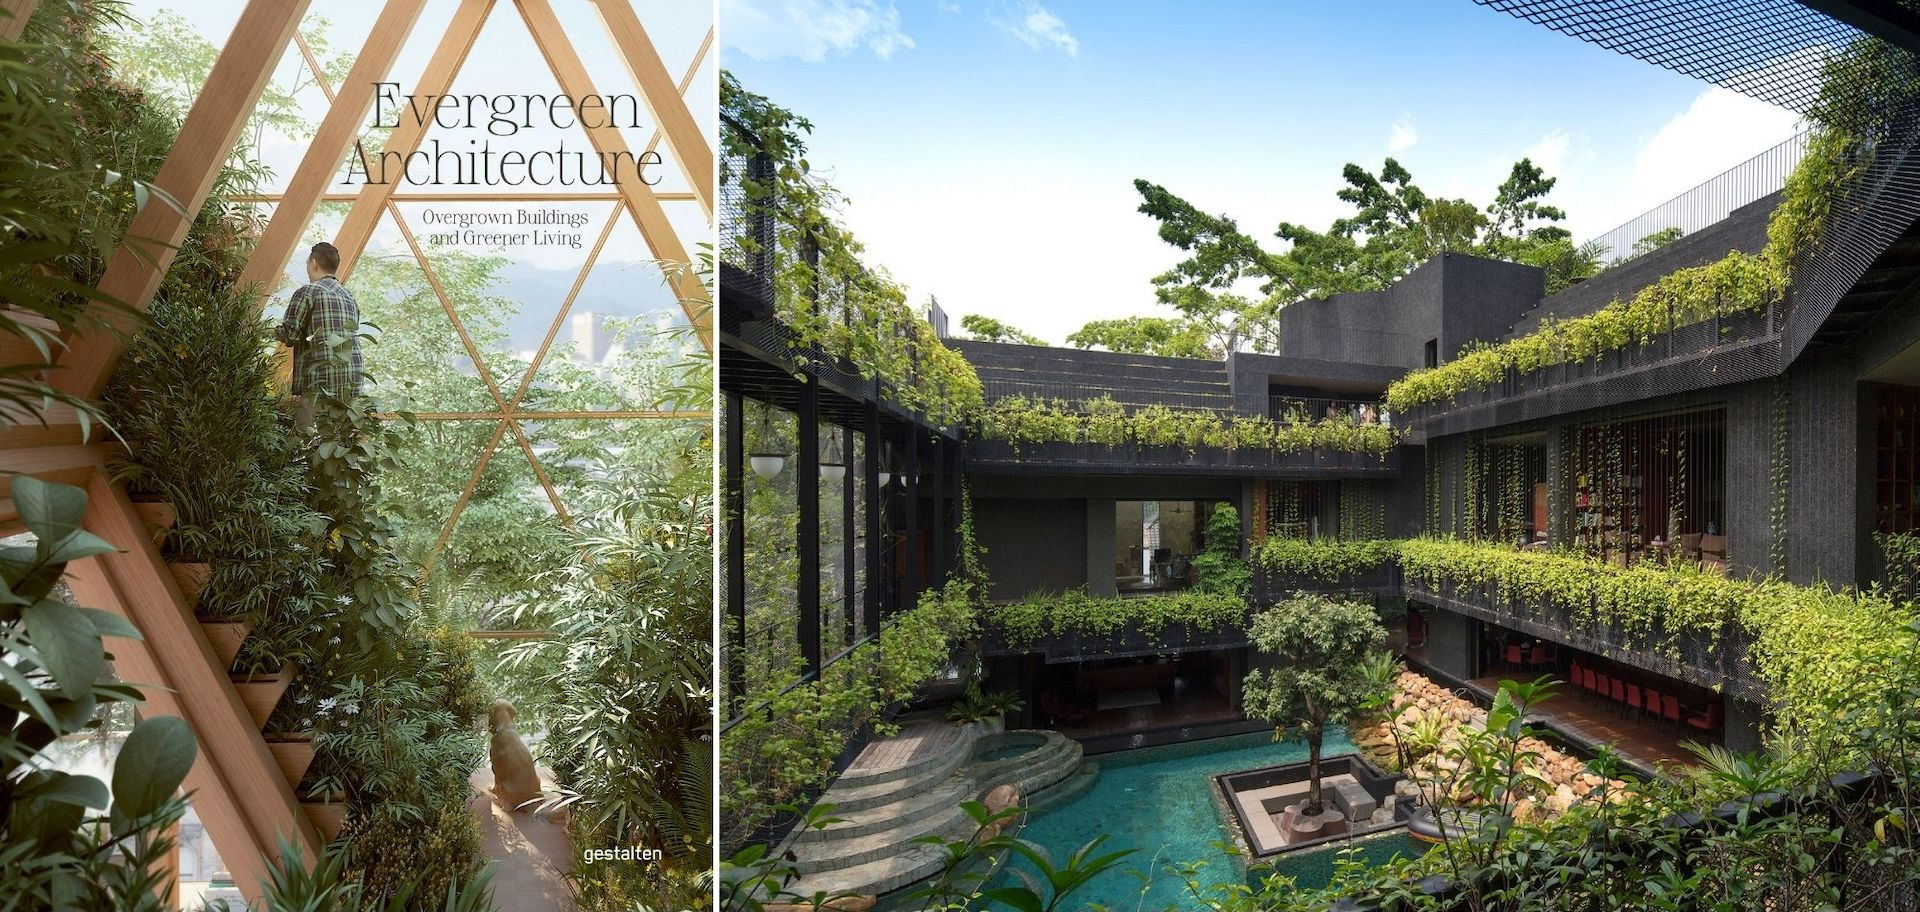 Evergreen Architecture cover. The private residence Cornwall Gardens in Singapore by CHANG Architects. Photos courtesy of CHANG Architects; © Gestalten 2021